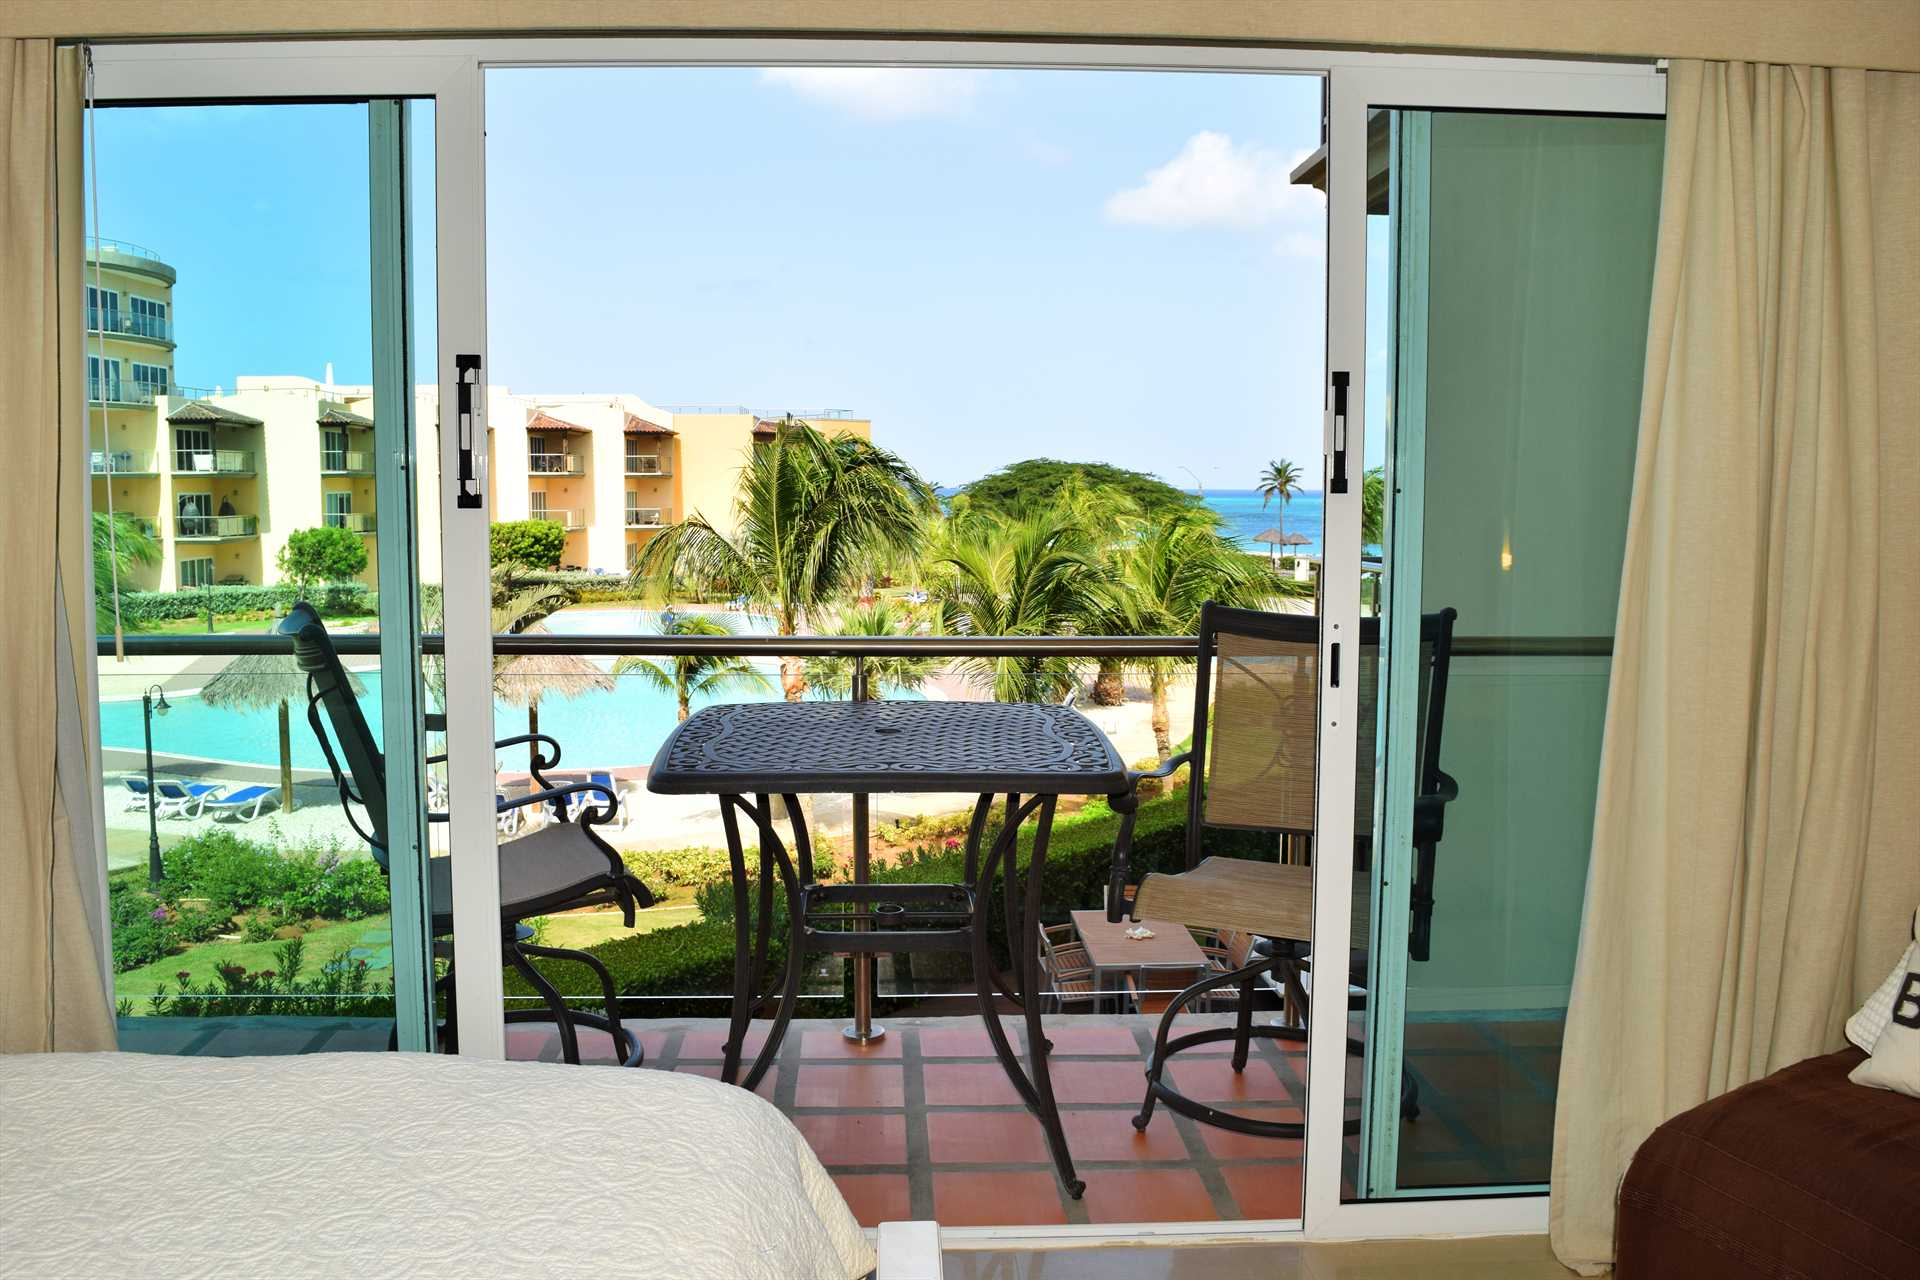 Master bedroom with private balcony with great ocean view too